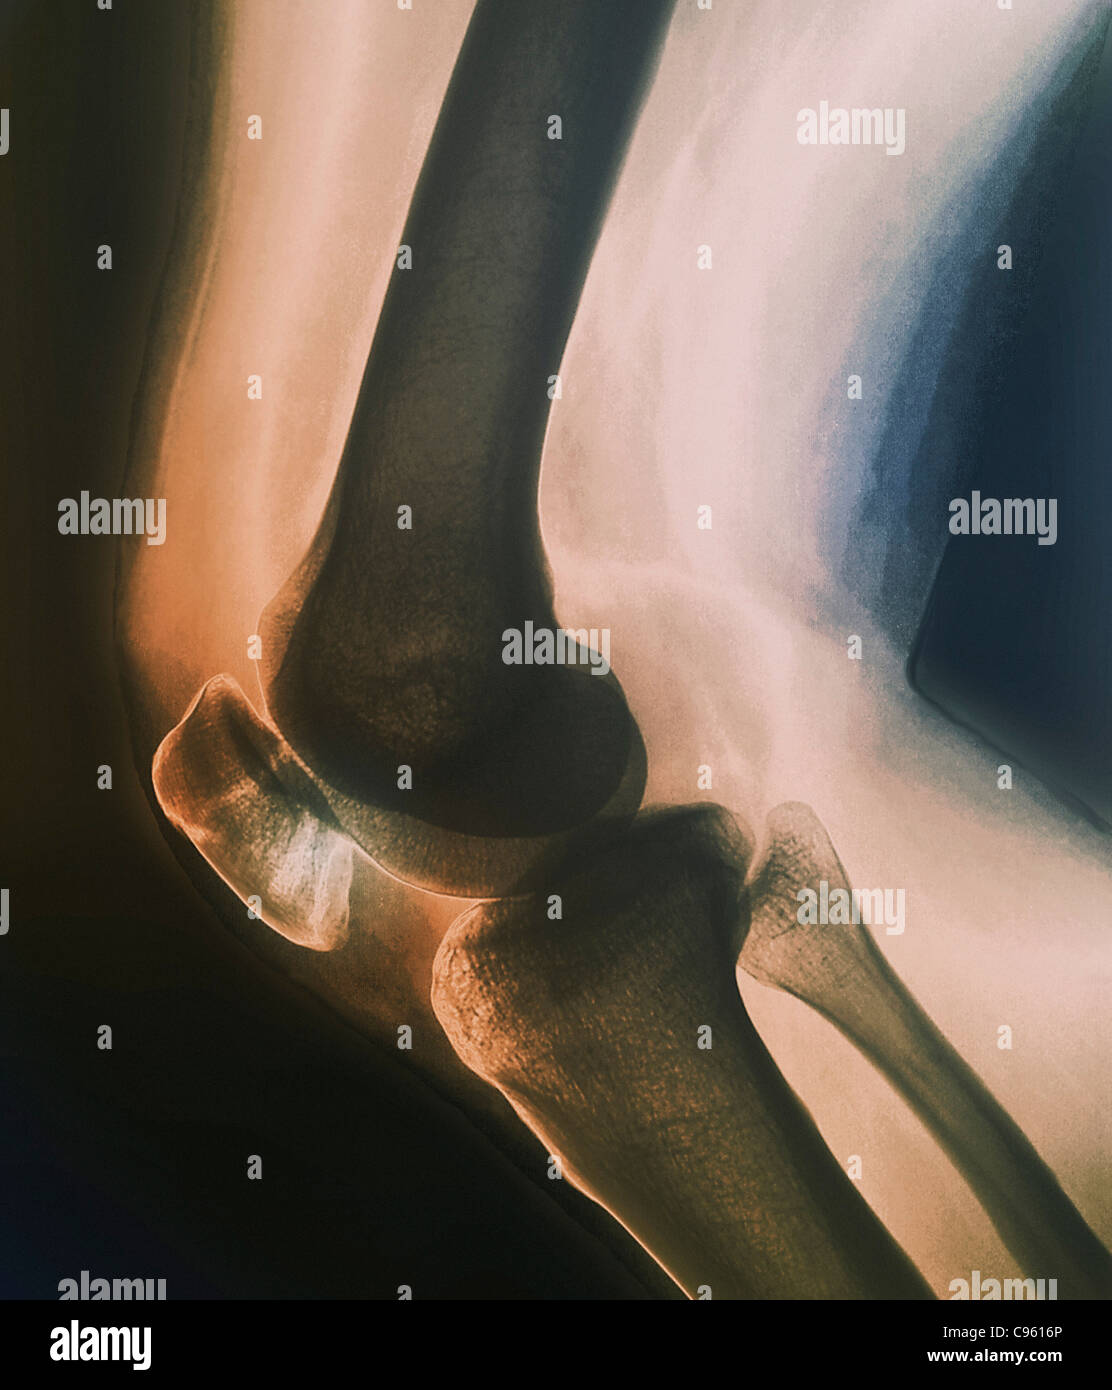 Broken knee. Coloured X-ray of the knee of a 38 year old patient with a fractured patella (kneecap). Stock Photo